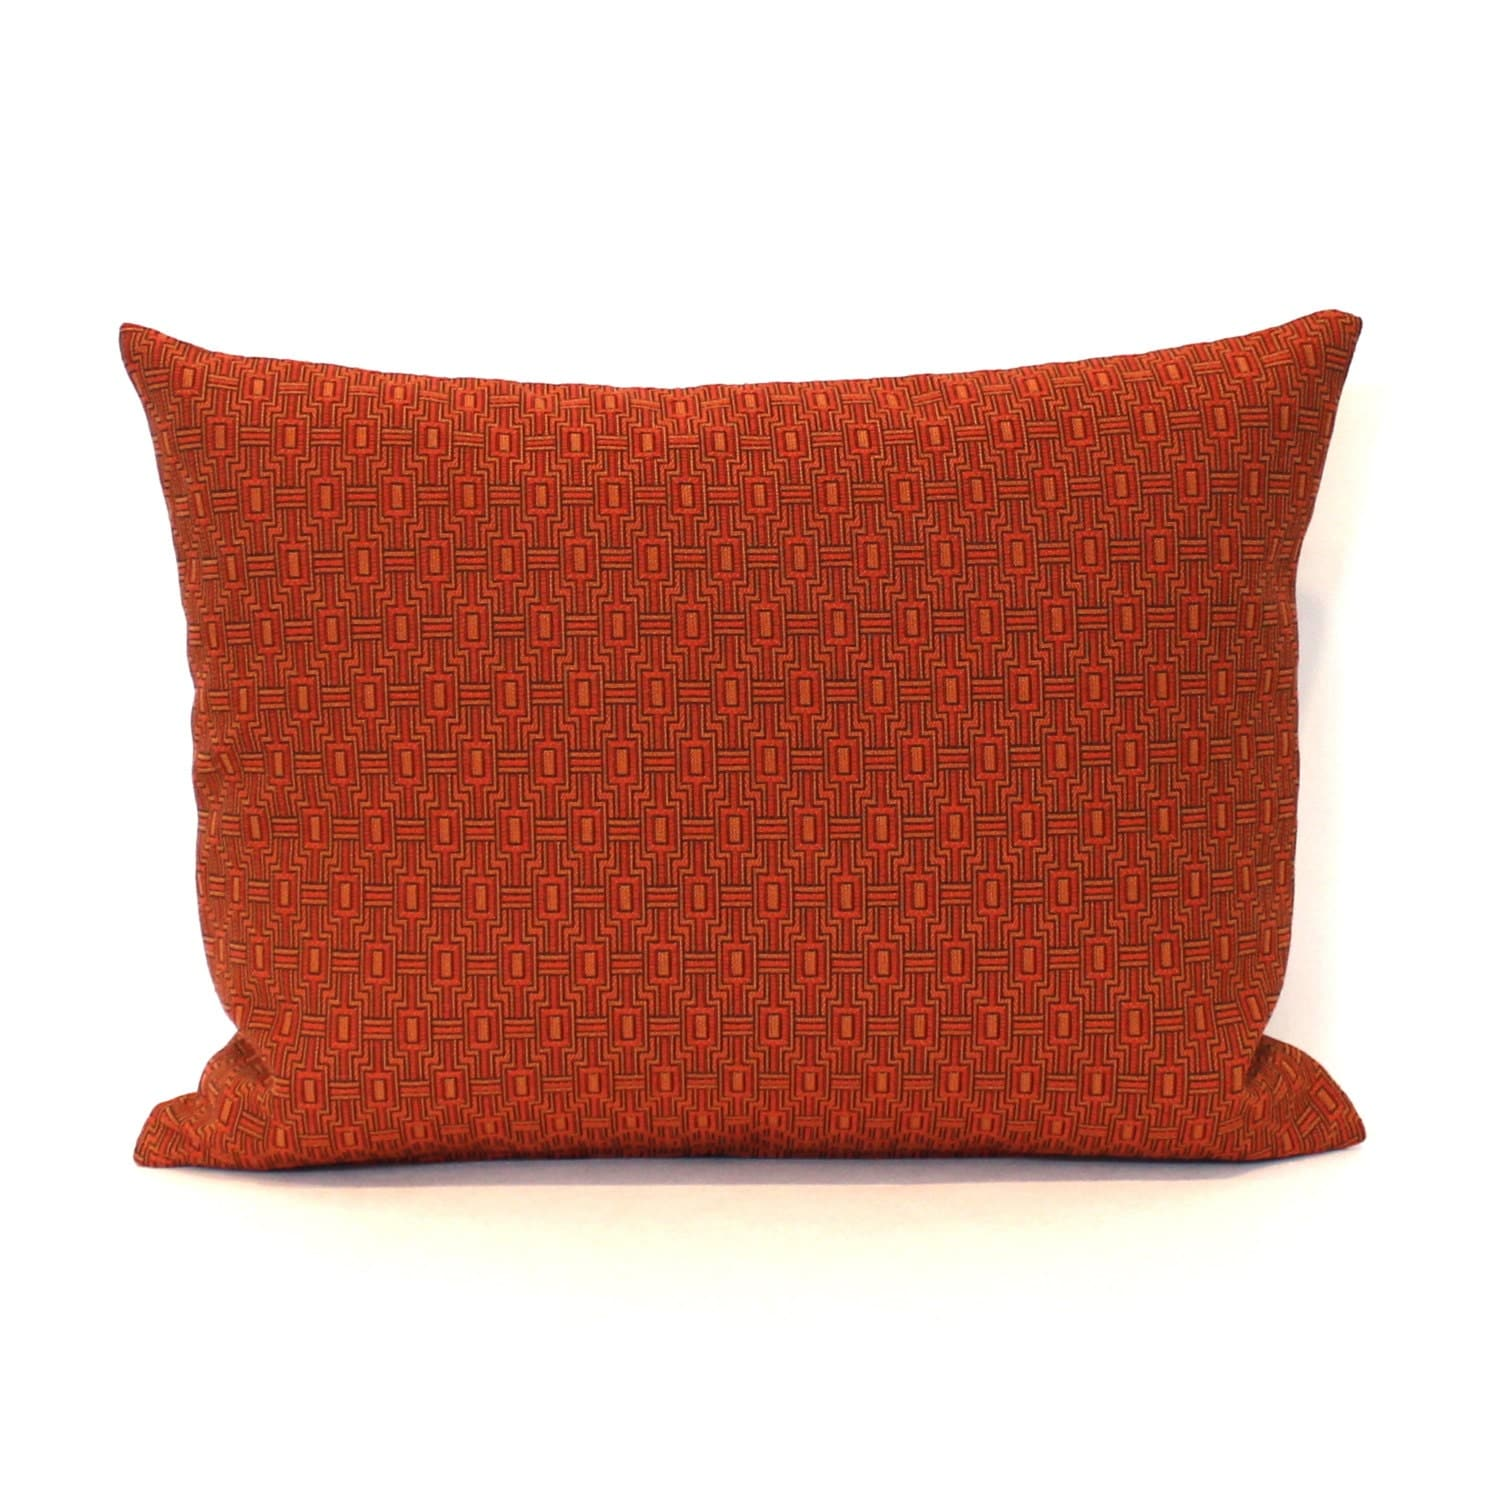 Throw Pillow Rust : Lumbar Pillow Cover Rust Orange Geometric Decorative Oblong